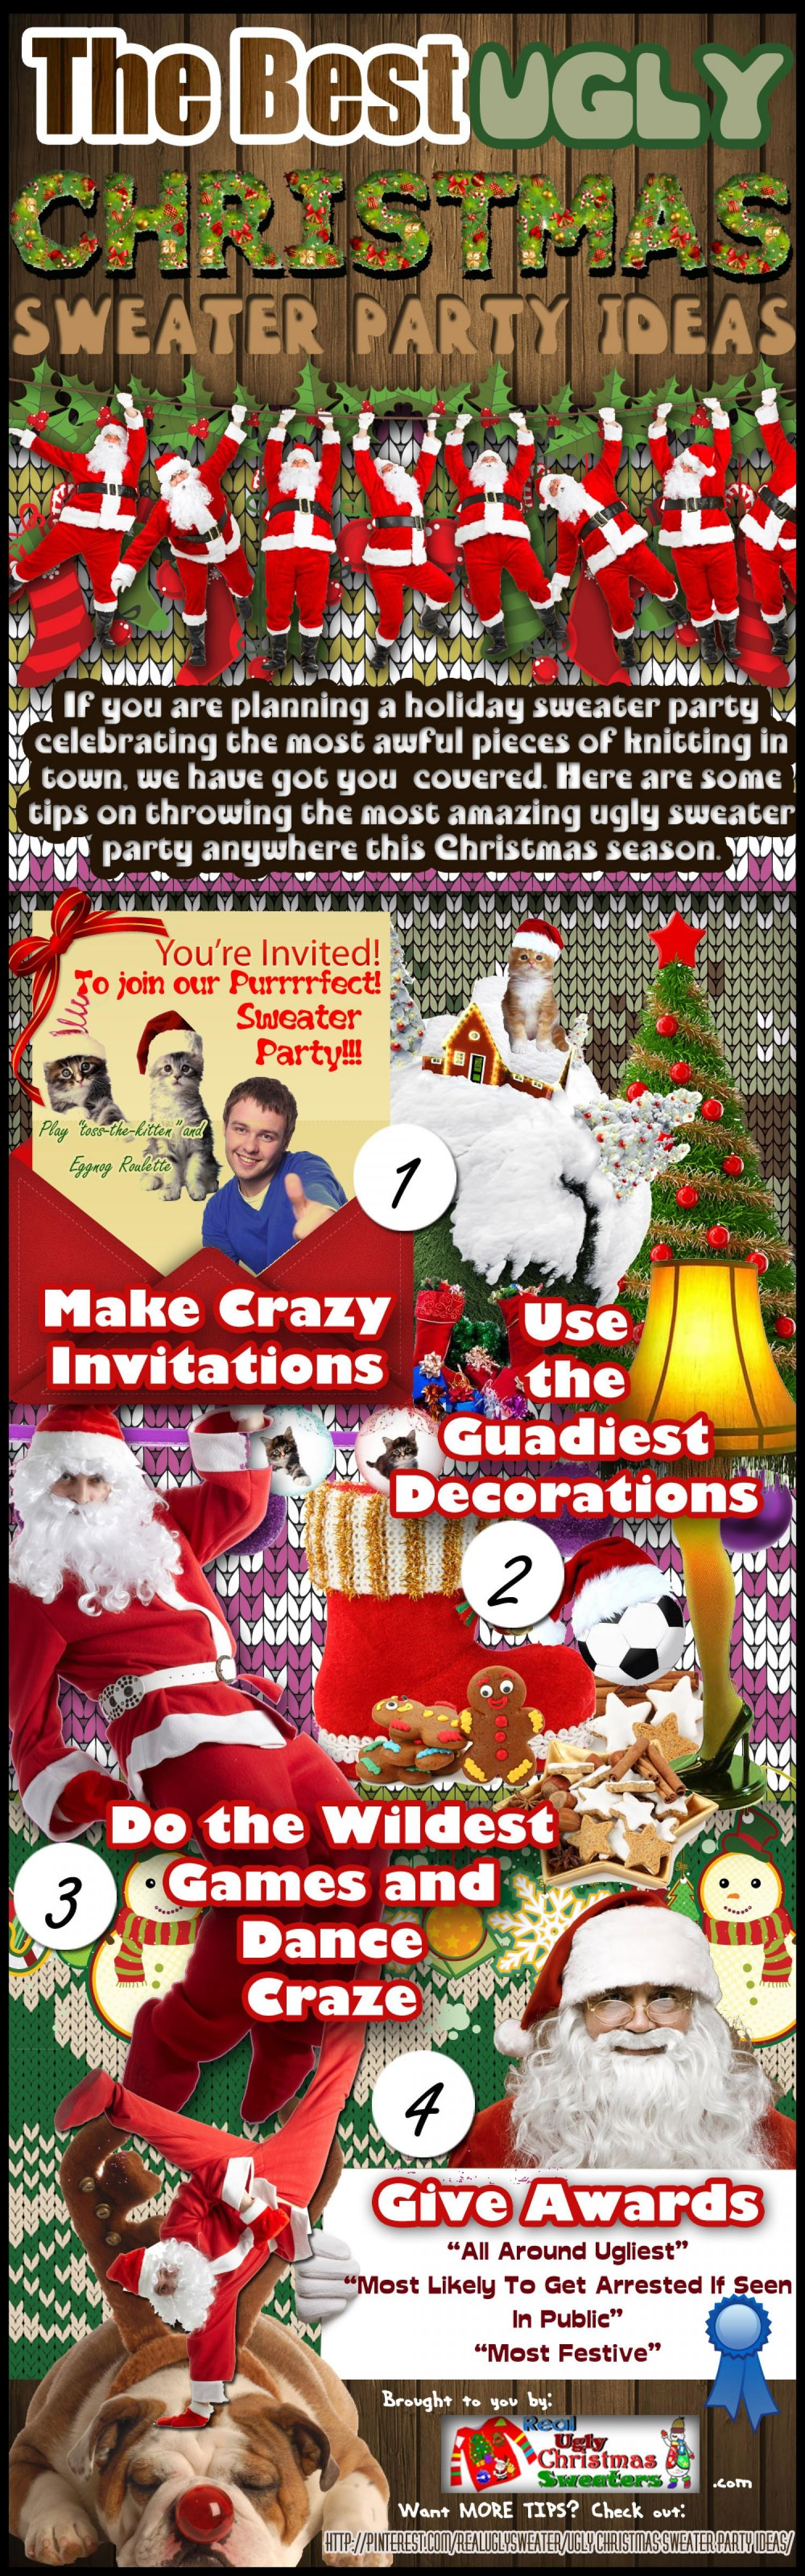 Best Ugly Christmas Sweater Party Ideas Visual